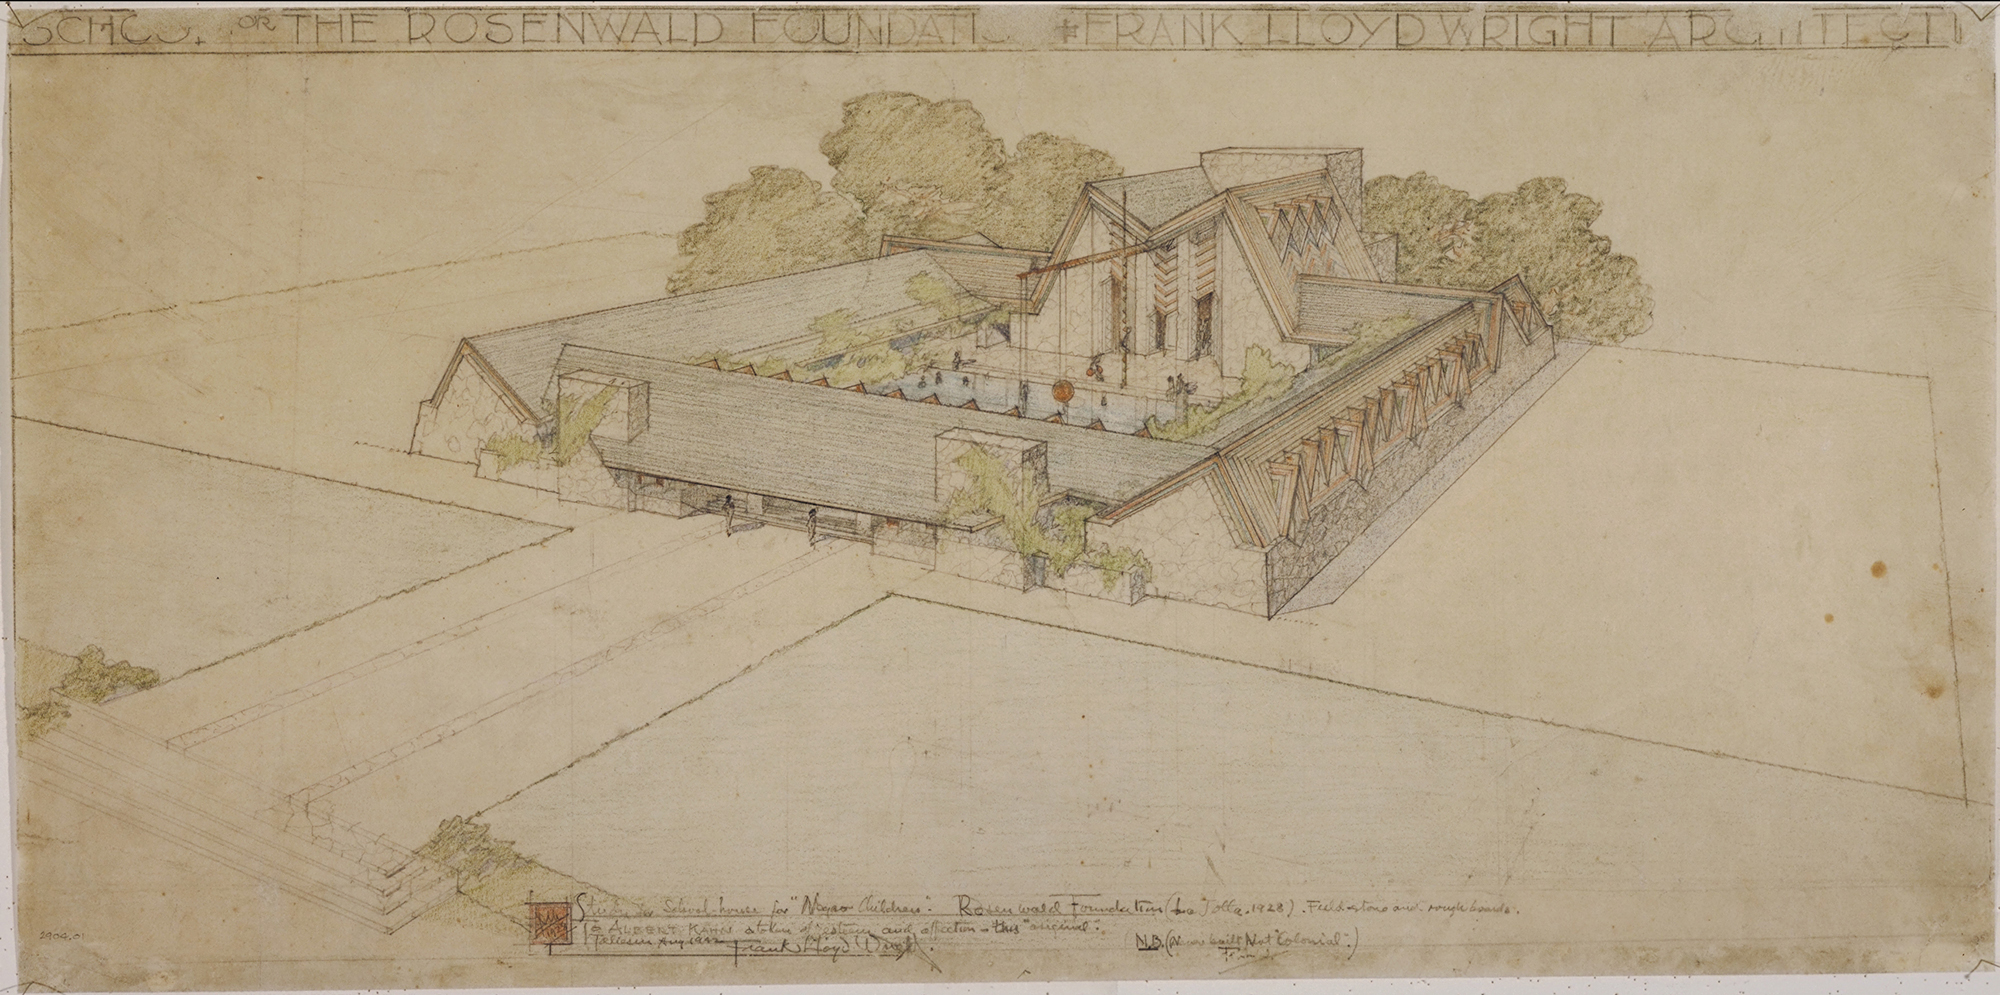 Frank Lloyd Wright (American, 1867–1959). Rosenwald Foundation School, Hampton Normal and Agricultural Institute, Virginia. Project, 1928.